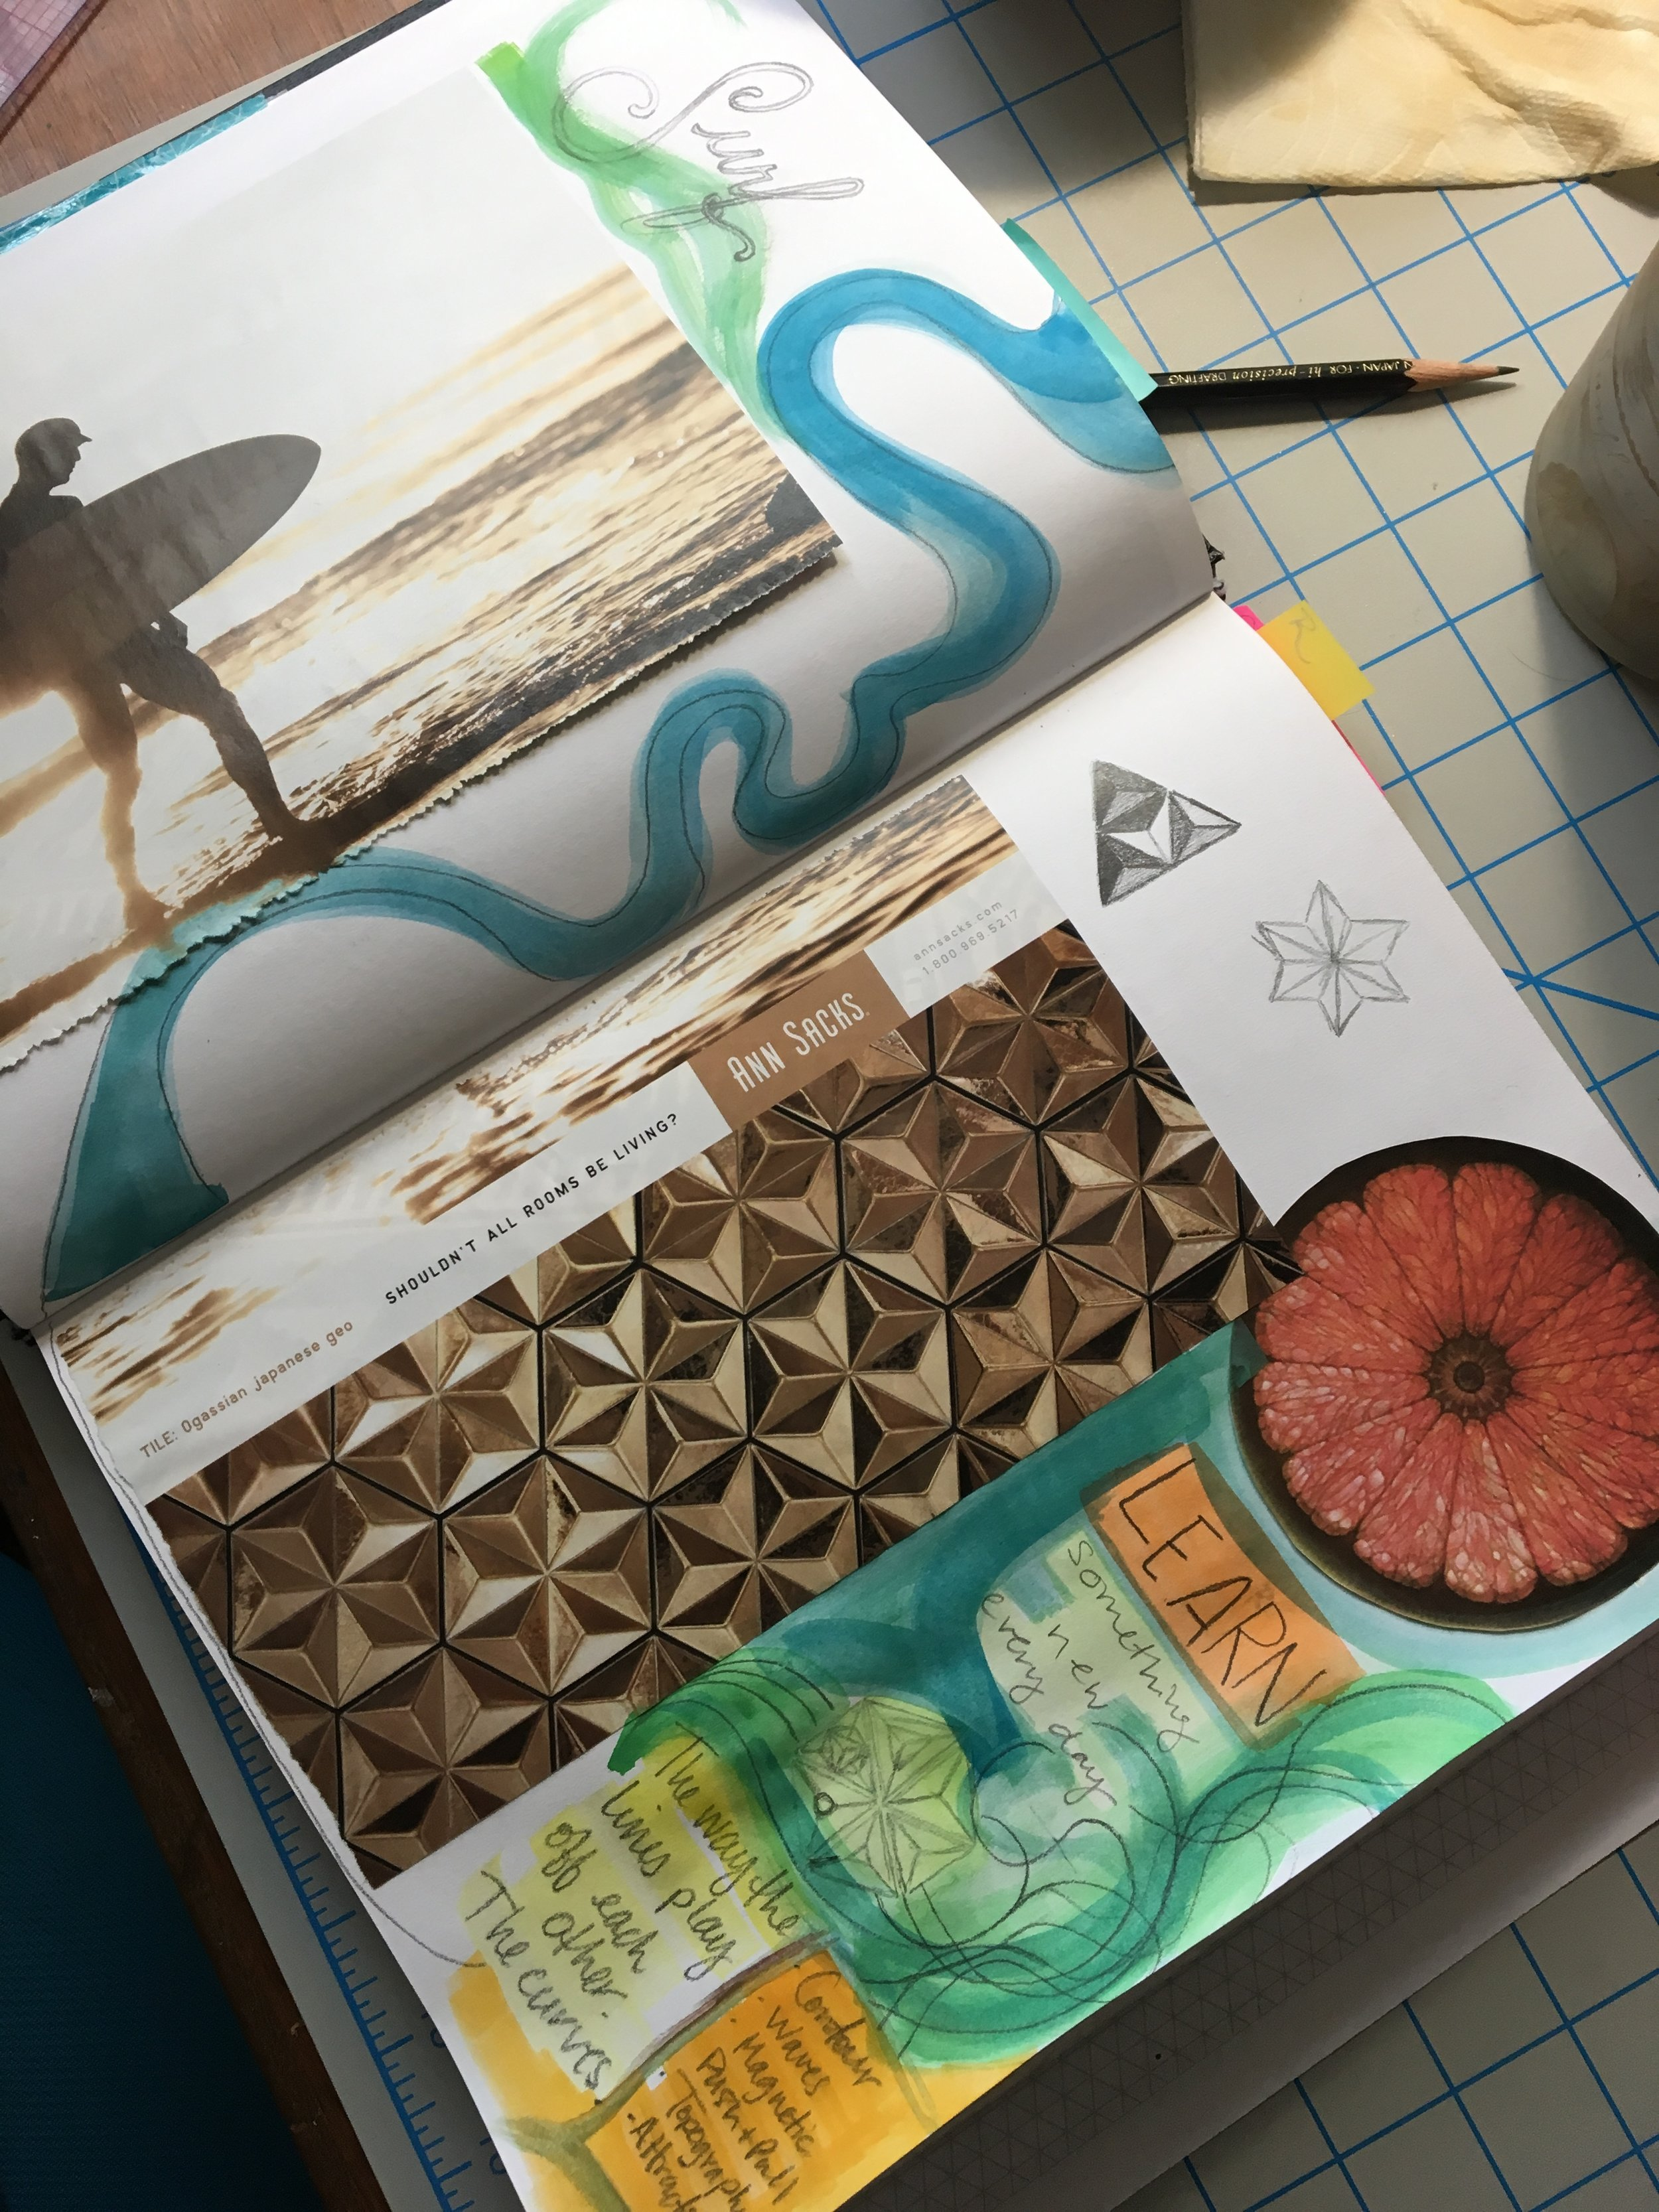 Tile design by Ann Sacks - Found in Elle Decor magazine and pasted in my sketchbook